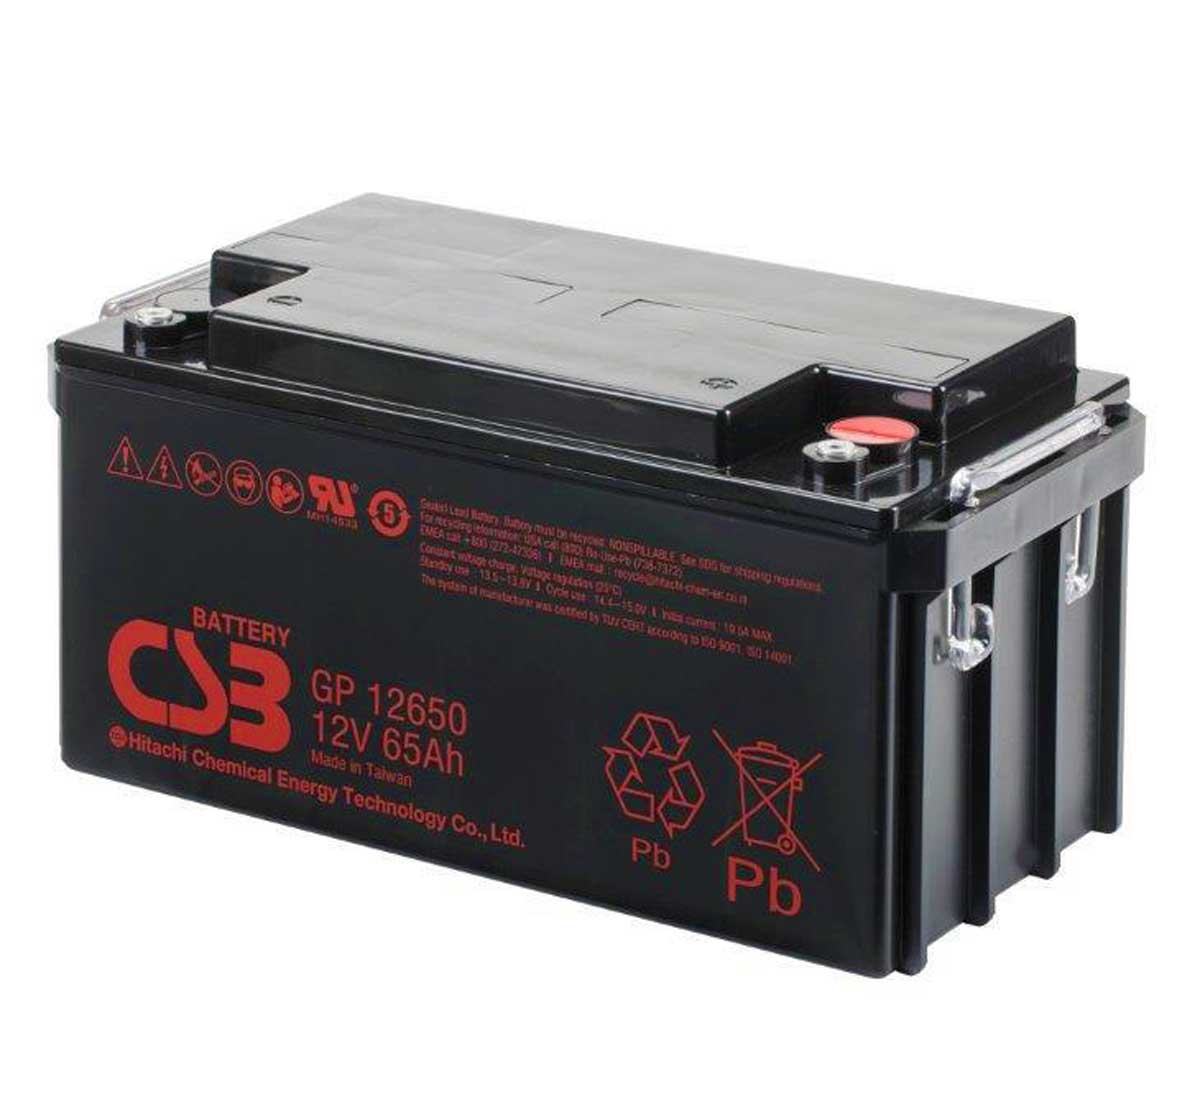 CSB GP12650 12V 65Ah Sealed Lead Acid Battery